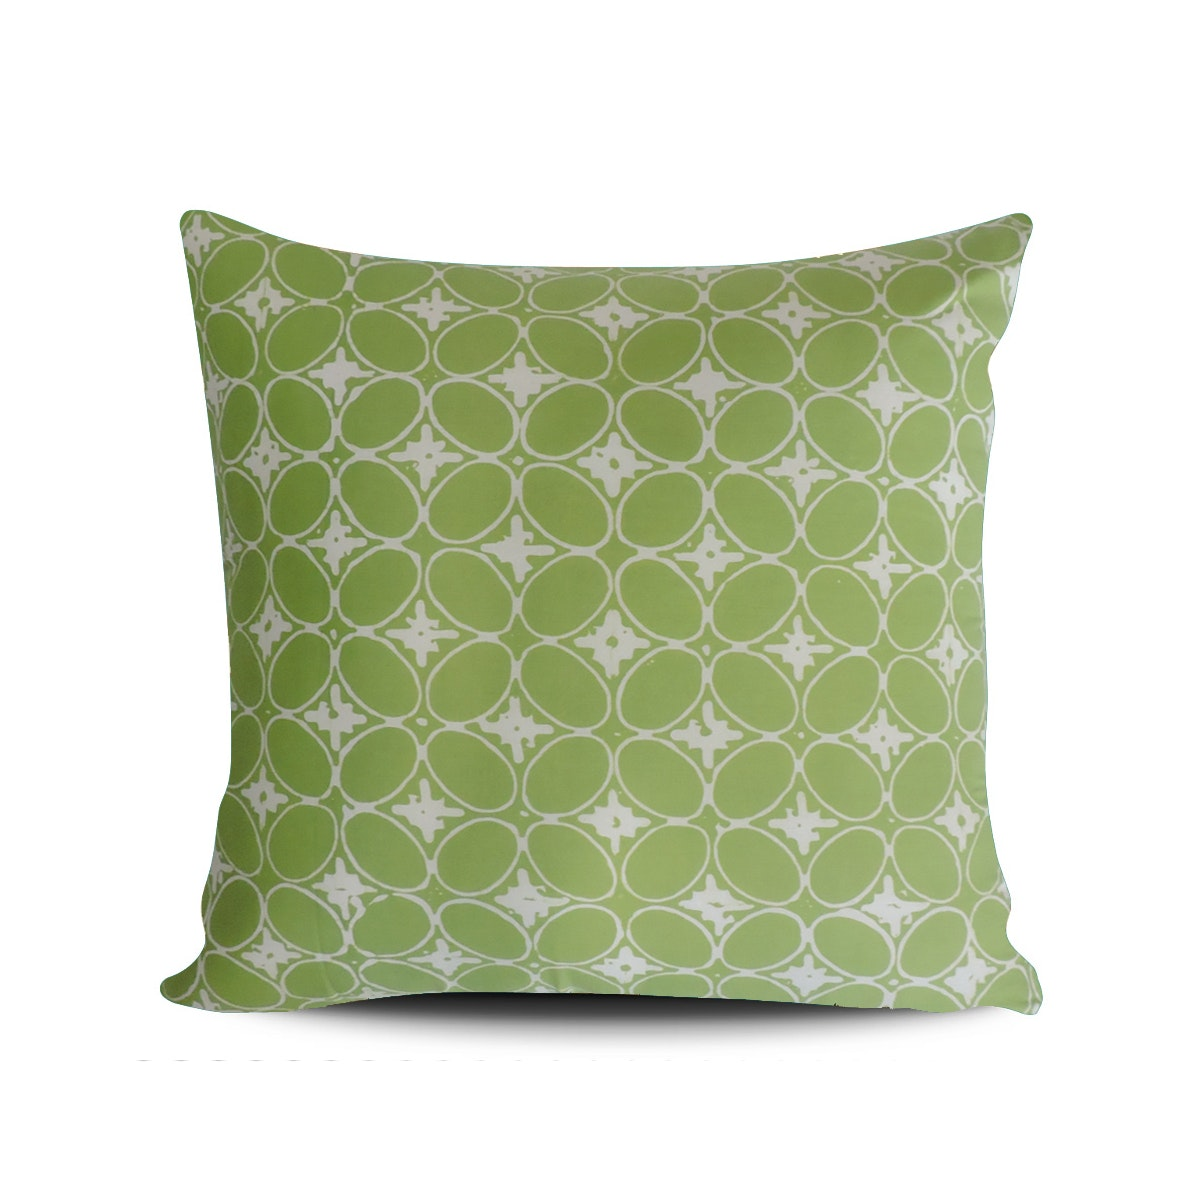 Sendean Designs Sawarna Daun Kawung Cushion Cover 40x40cm